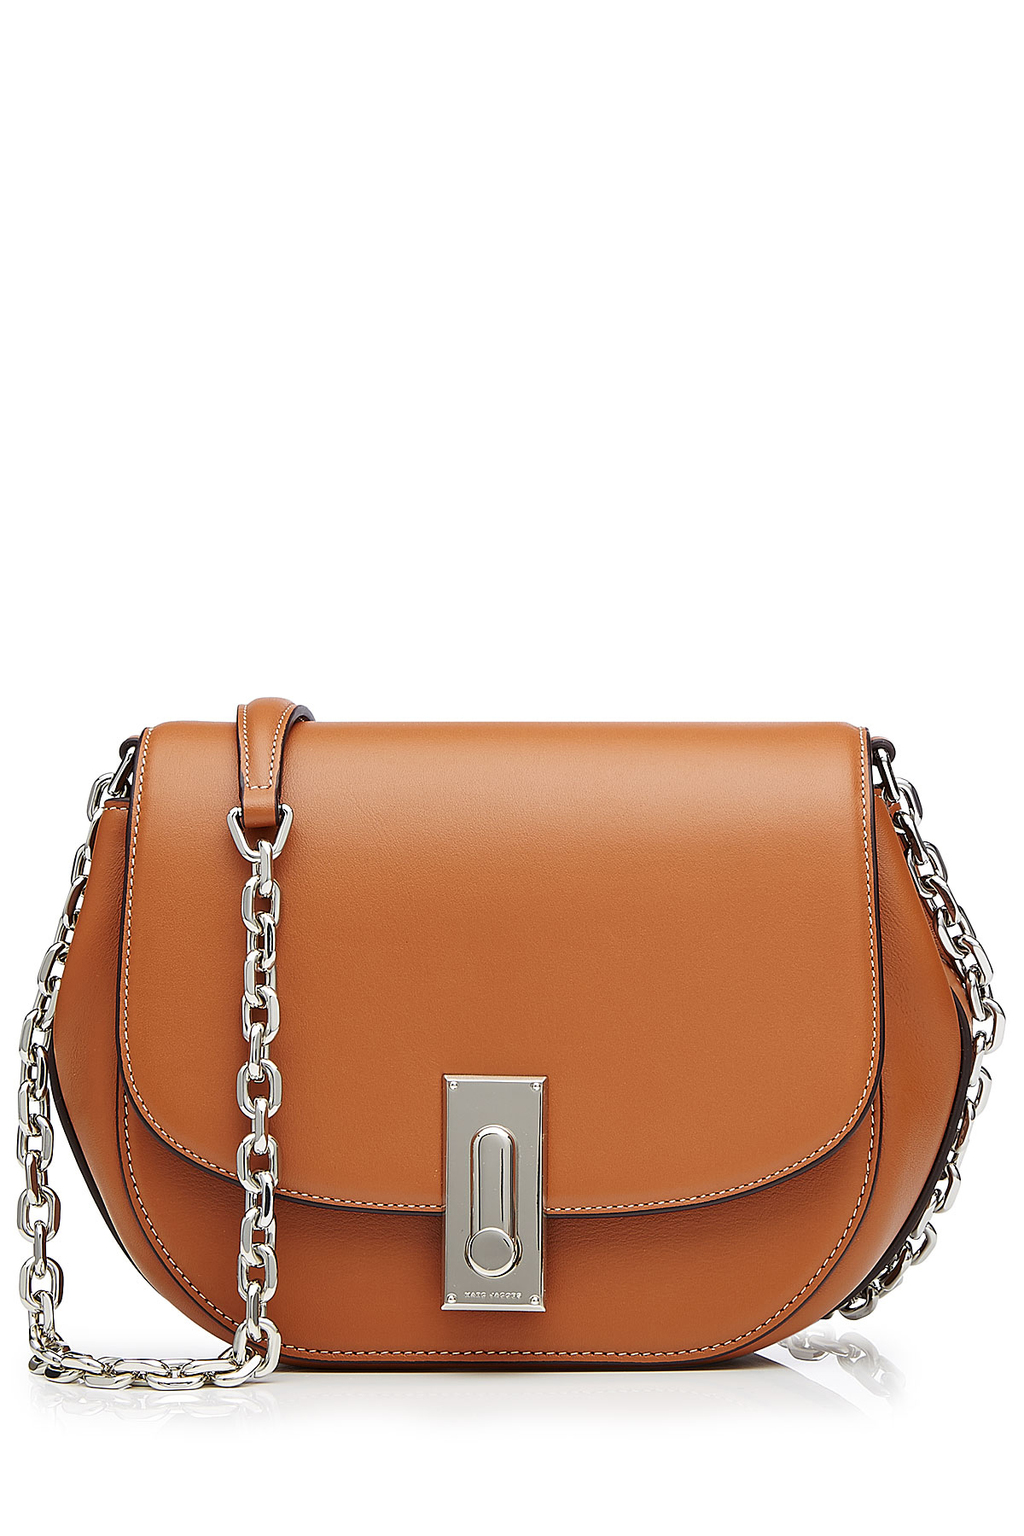 West End Leather Saddle Bag Brown - predominant colour: tan; secondary colour: silver; occasions: casual, creative work; type of pattern: standard; style: saddle; length: across body/long; size: standard; material: leather; pattern: plain; finish: plain; embellishment: chain/metal; season: s/s 2016